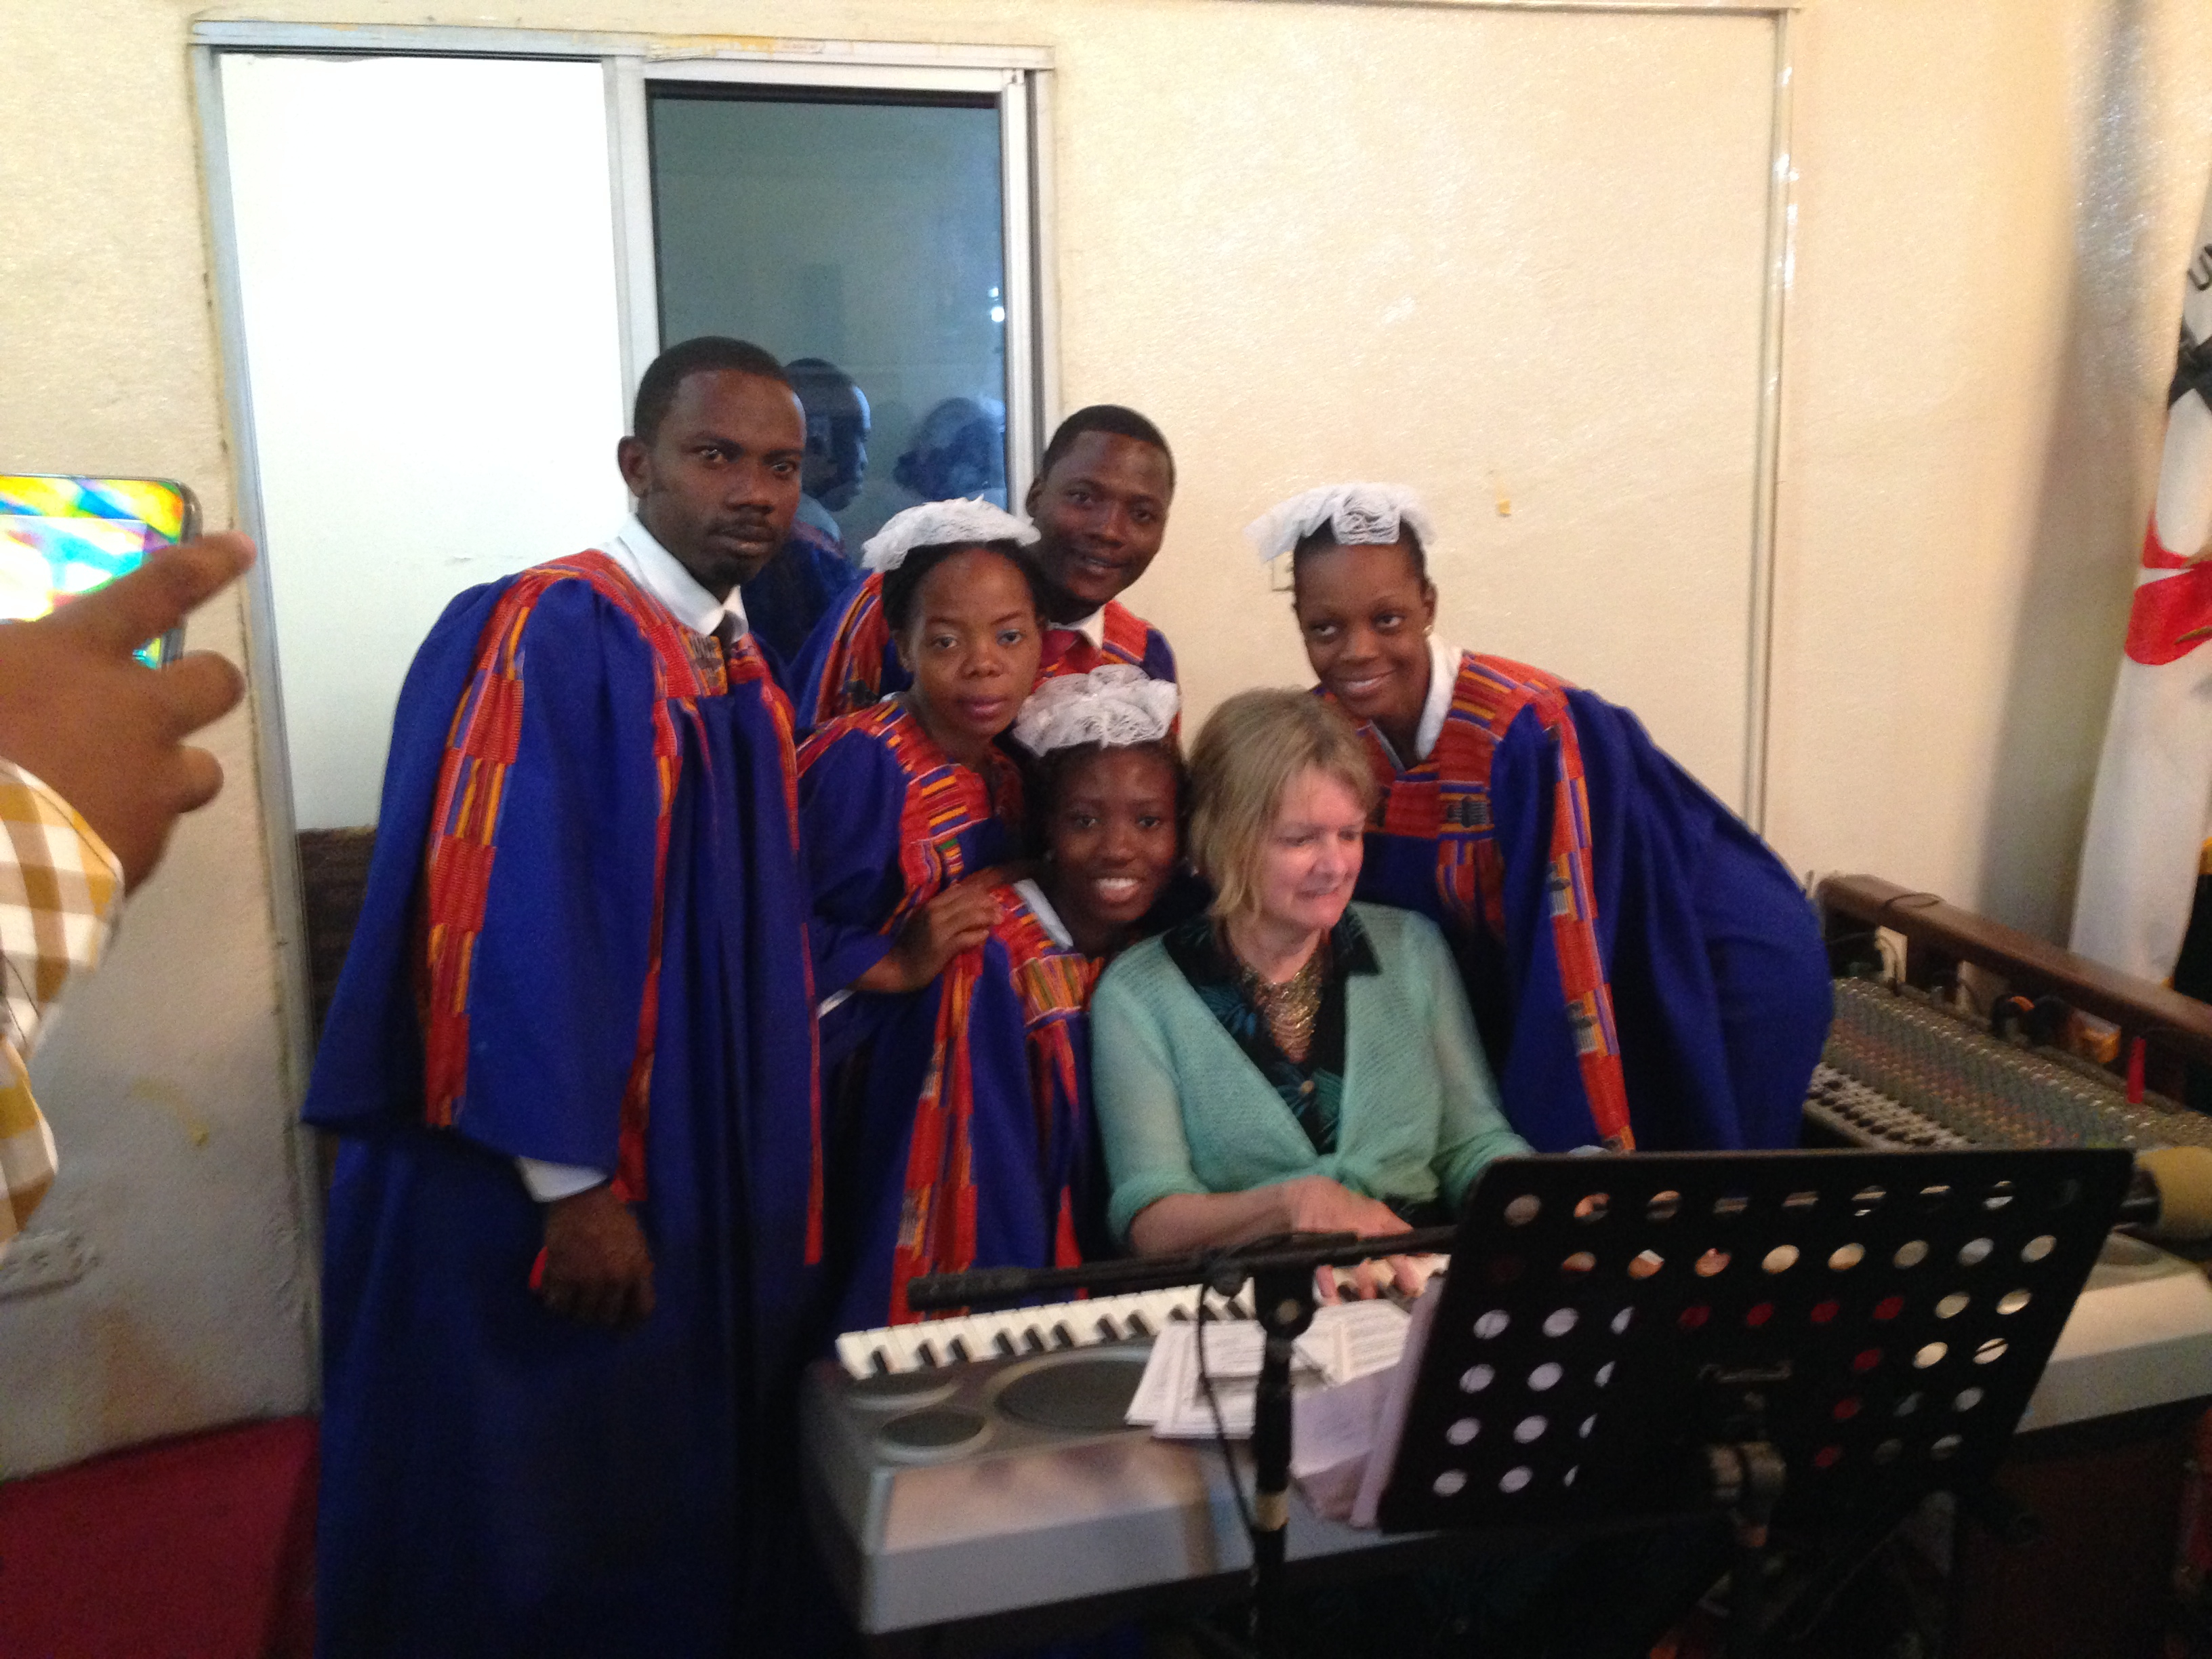 After the service, some the choir surrounds Julie for photos!